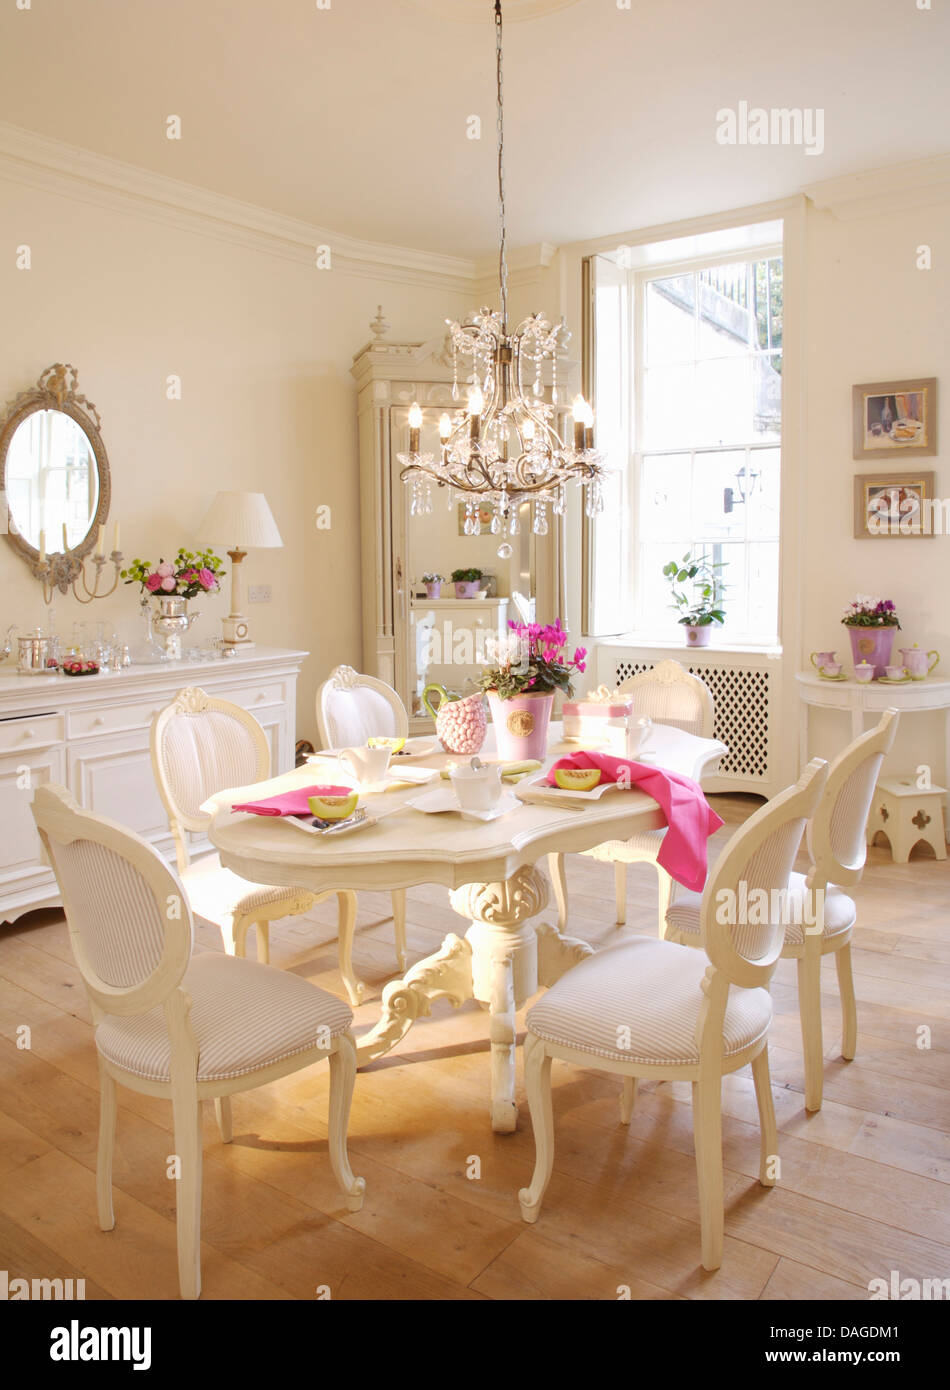 Groovy White French Style Chairs And Painted Oval Table In White Home Interior And Landscaping Ologienasavecom